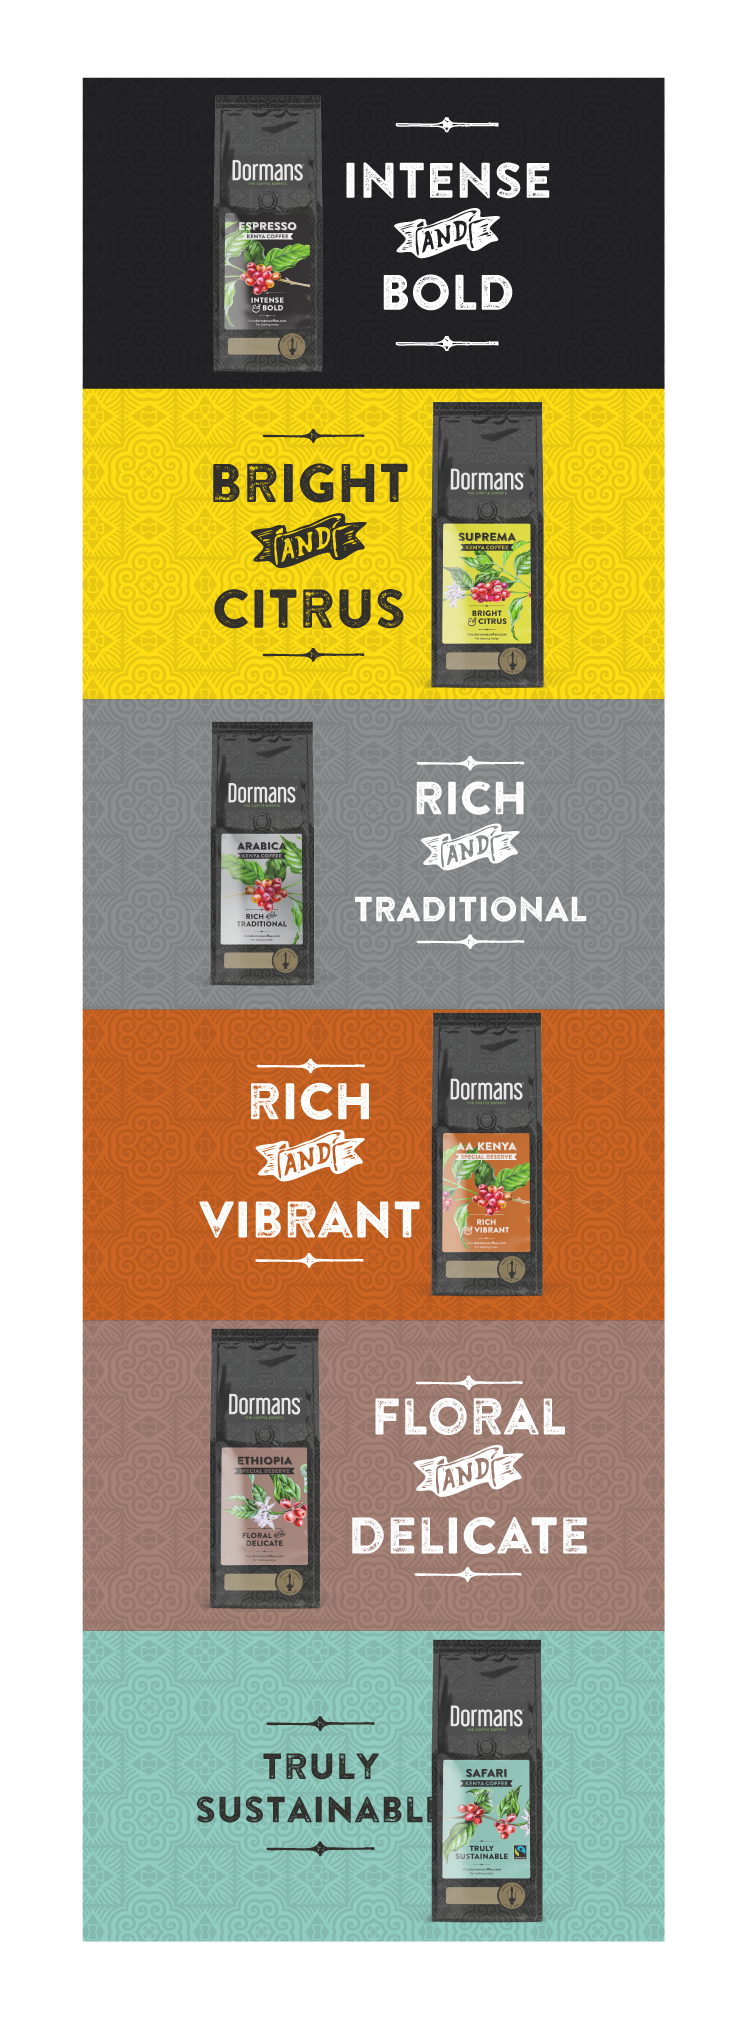 WHY DORMANS - Variety. We offer a wide variety of coffee blends to meet the different taste profiles of our customers, both local and the world over. We have different roast and grind profile to suit varied methods of making coffee.Value. Our partnerships along the coffee chain place us in a unique position to offer best value for every blend we offer.Quality & Expertise. Roasting is an art and a science - Through roasting, the chemical and physical properties of the coffee are transformed. Masterful roasting enhances the nuances, aroma and best characteristics of the coffee. Dormans has decades of experience and expertise in roasting. This coupled with our investment in state-of-the-art precision equipment gives us an edge and enables us guarantee the consistency of the quality of our products. Each blend is skillfully roasted in small batches to ensure peak quality. The coffee is packed in foil bags, and we flush in nitrogen before fixing a one way freshness valve. This valve locks in the flavour and aroma and protects the coffee from moisture and air.Unparalled Services. We love what we do and it shows in the solutions we provide. Our diverse and talented staff proactively provide advice, facilitate training, undertake audits and support the maintenance of coffee machines. We also offer merchandising support and point of sale marketing material to our wholesalers. Our approach is to customize our solutions to meet our customers business goals.Complementary Products. We supply coffee making machines and accessories such as French presses, brewers, tampers, knock-boxes among other accessories required by our hospitality customers. We also offer tea and coffee syrups.Industry Leadership & Innovation. Our master roasters and quality control team with decades of experience have a passion for quality and sustainable innovation ensuring we remain at the forefront of innovation in our industry.Safety & Sustainability. Our certifications attest to our commitment to safety and quality and demonstrate and that we exercise invest in enhanced risk management systems and give utmost care and attention to detail at all the stages of handling and processing our coffee so as to ensure that it is safe for consumption.Our association with Fairtrade is evidence of our commitment to buy quality coffee from farmers at premium prices, commensurate to their efforts. Our Coffee Kenya Mark further validates our commitment to the industry.